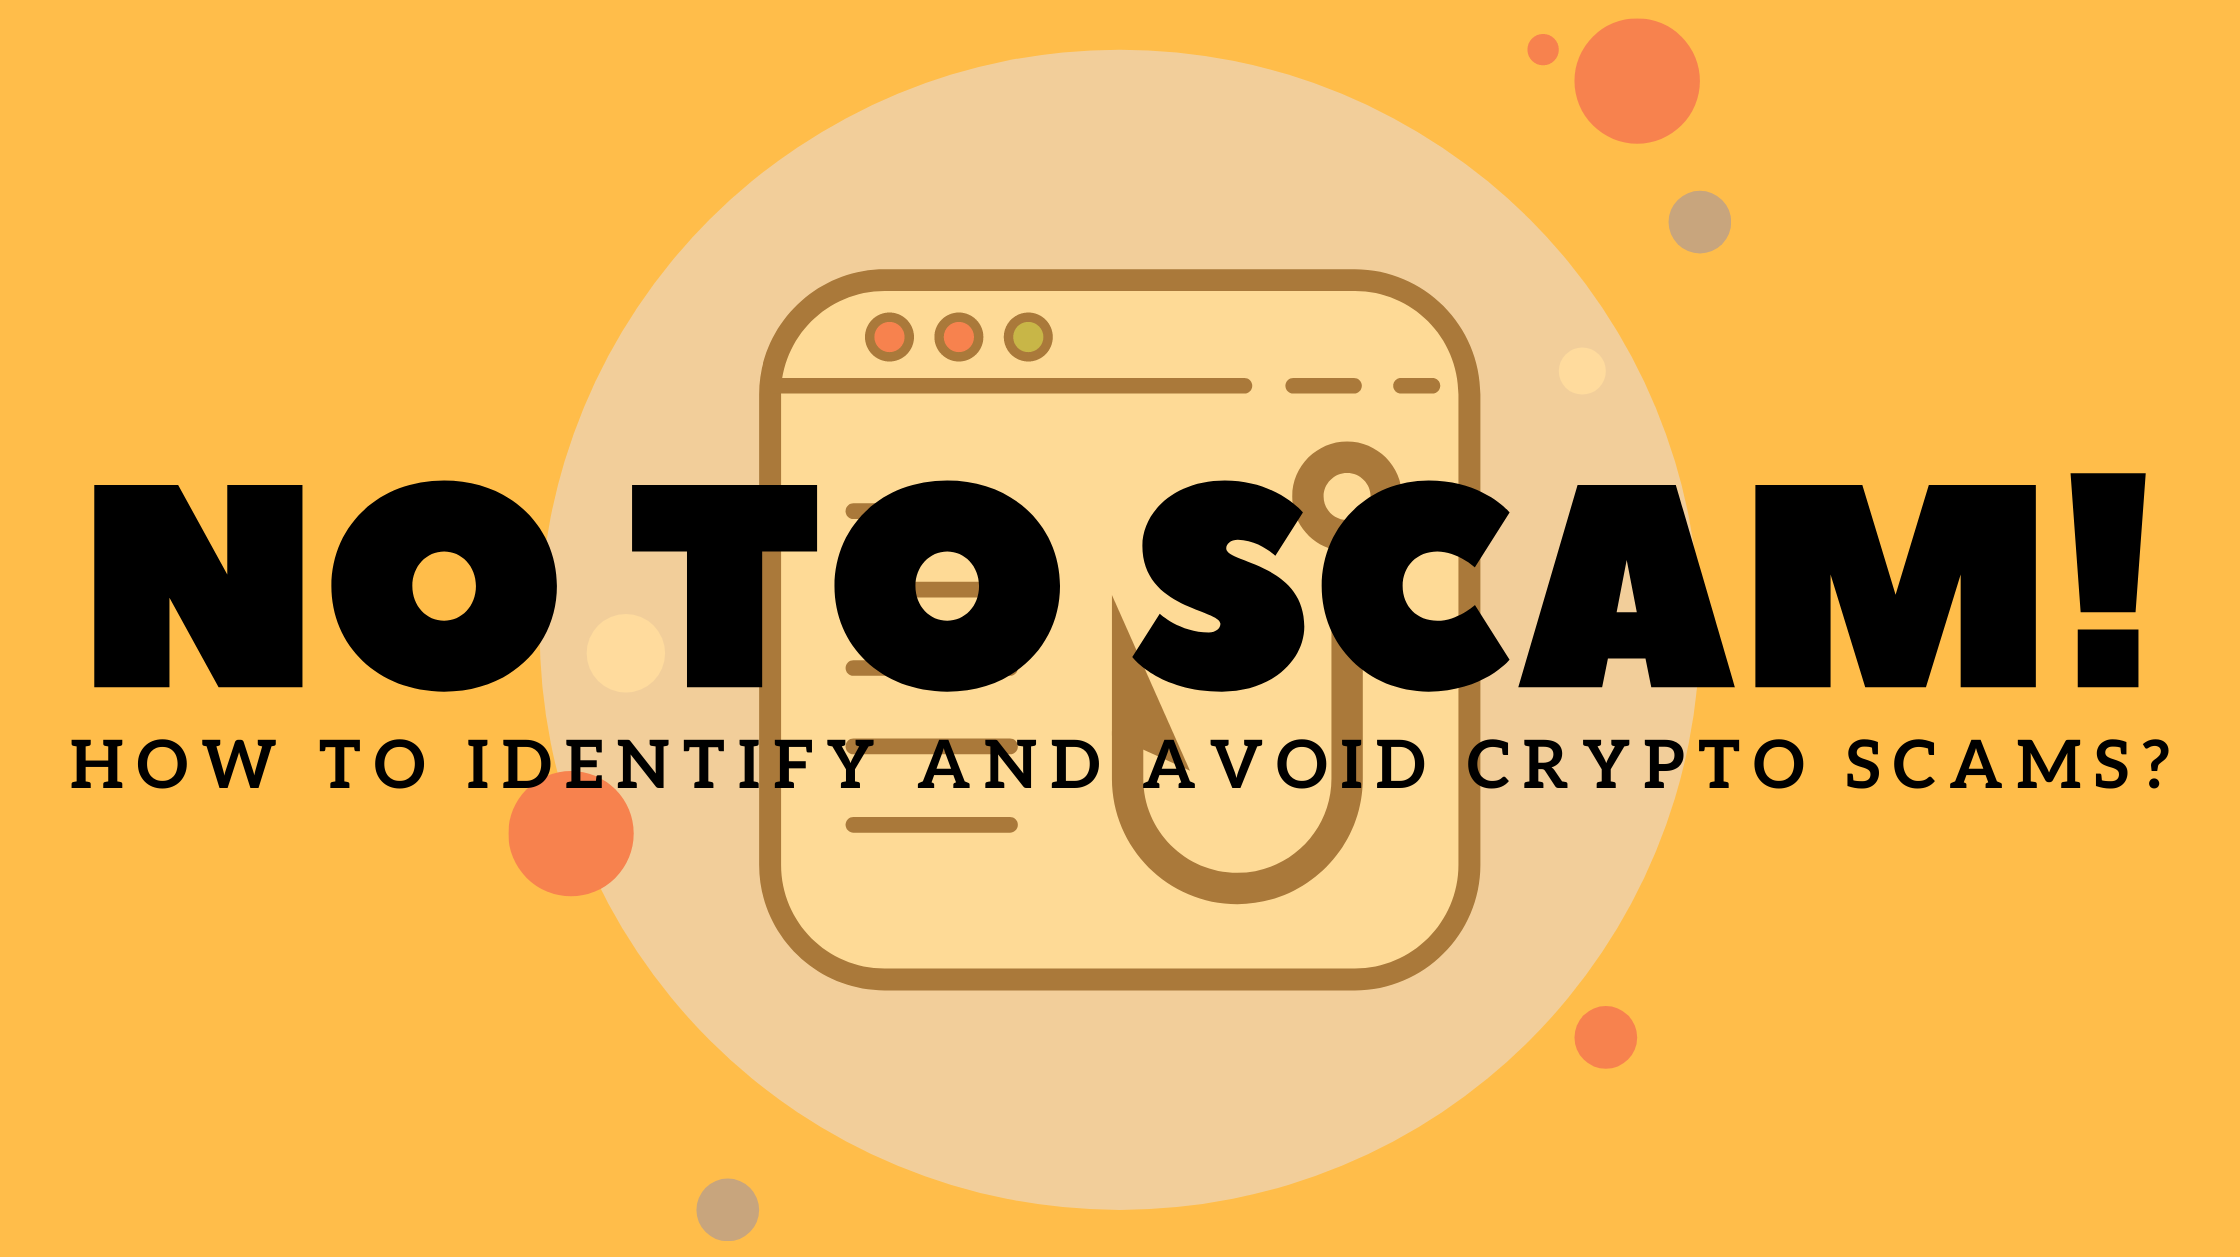 How To Identify And Avoid Crypto Scams?